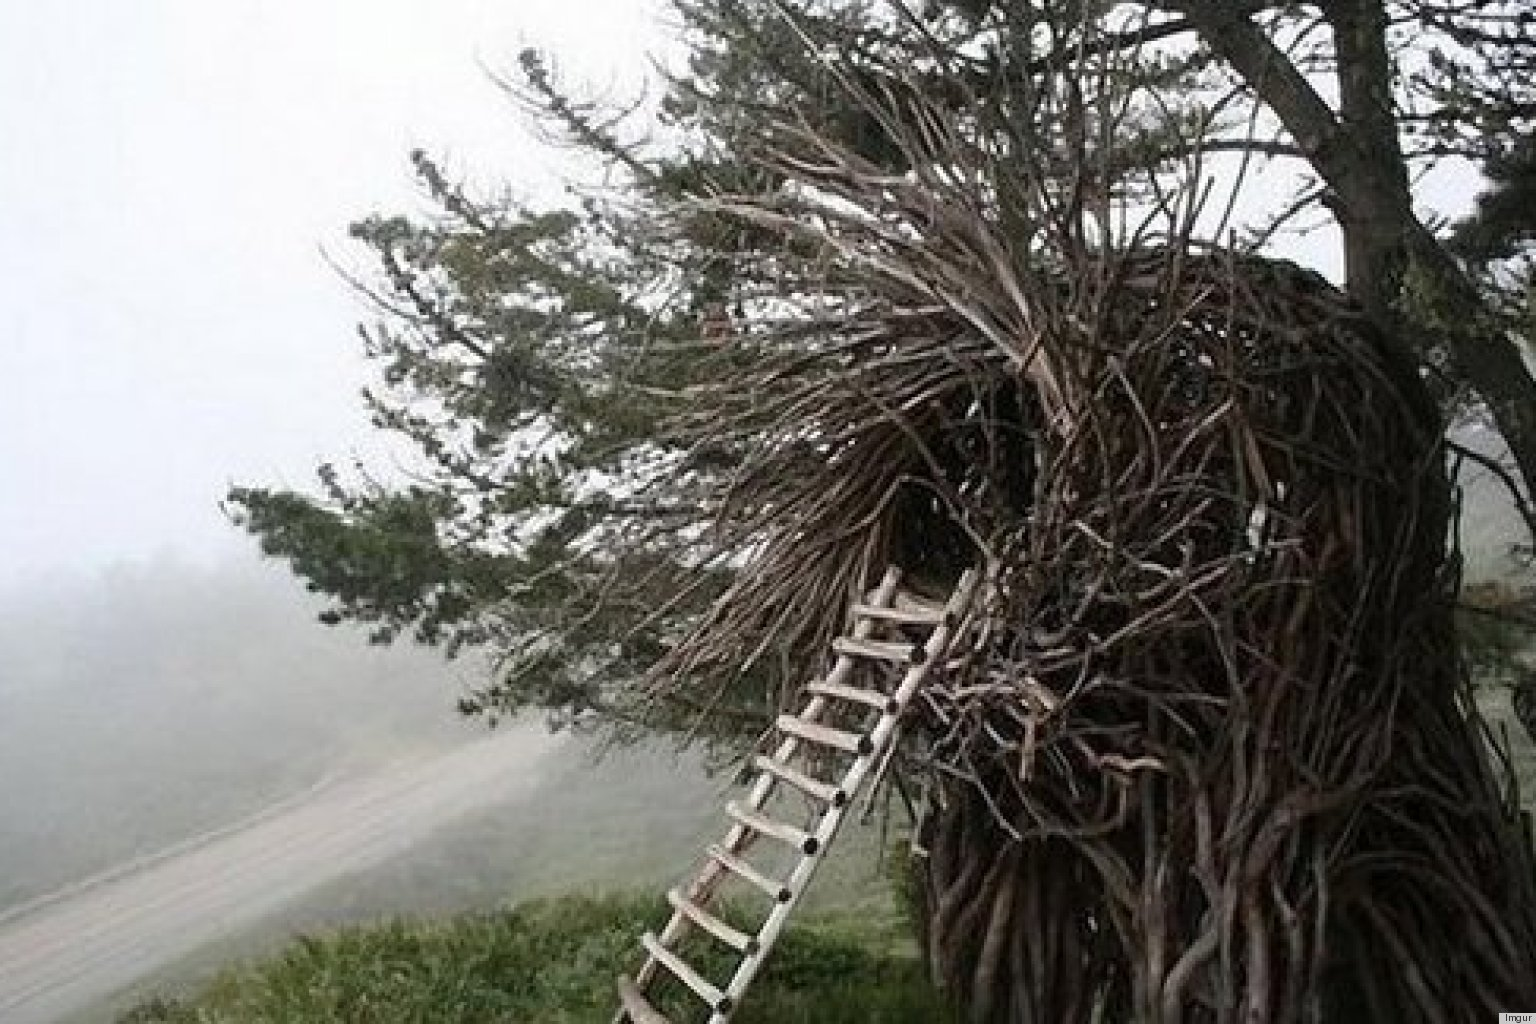 A Human Nest Is One Way To Save On Accommodation (PHOTOS